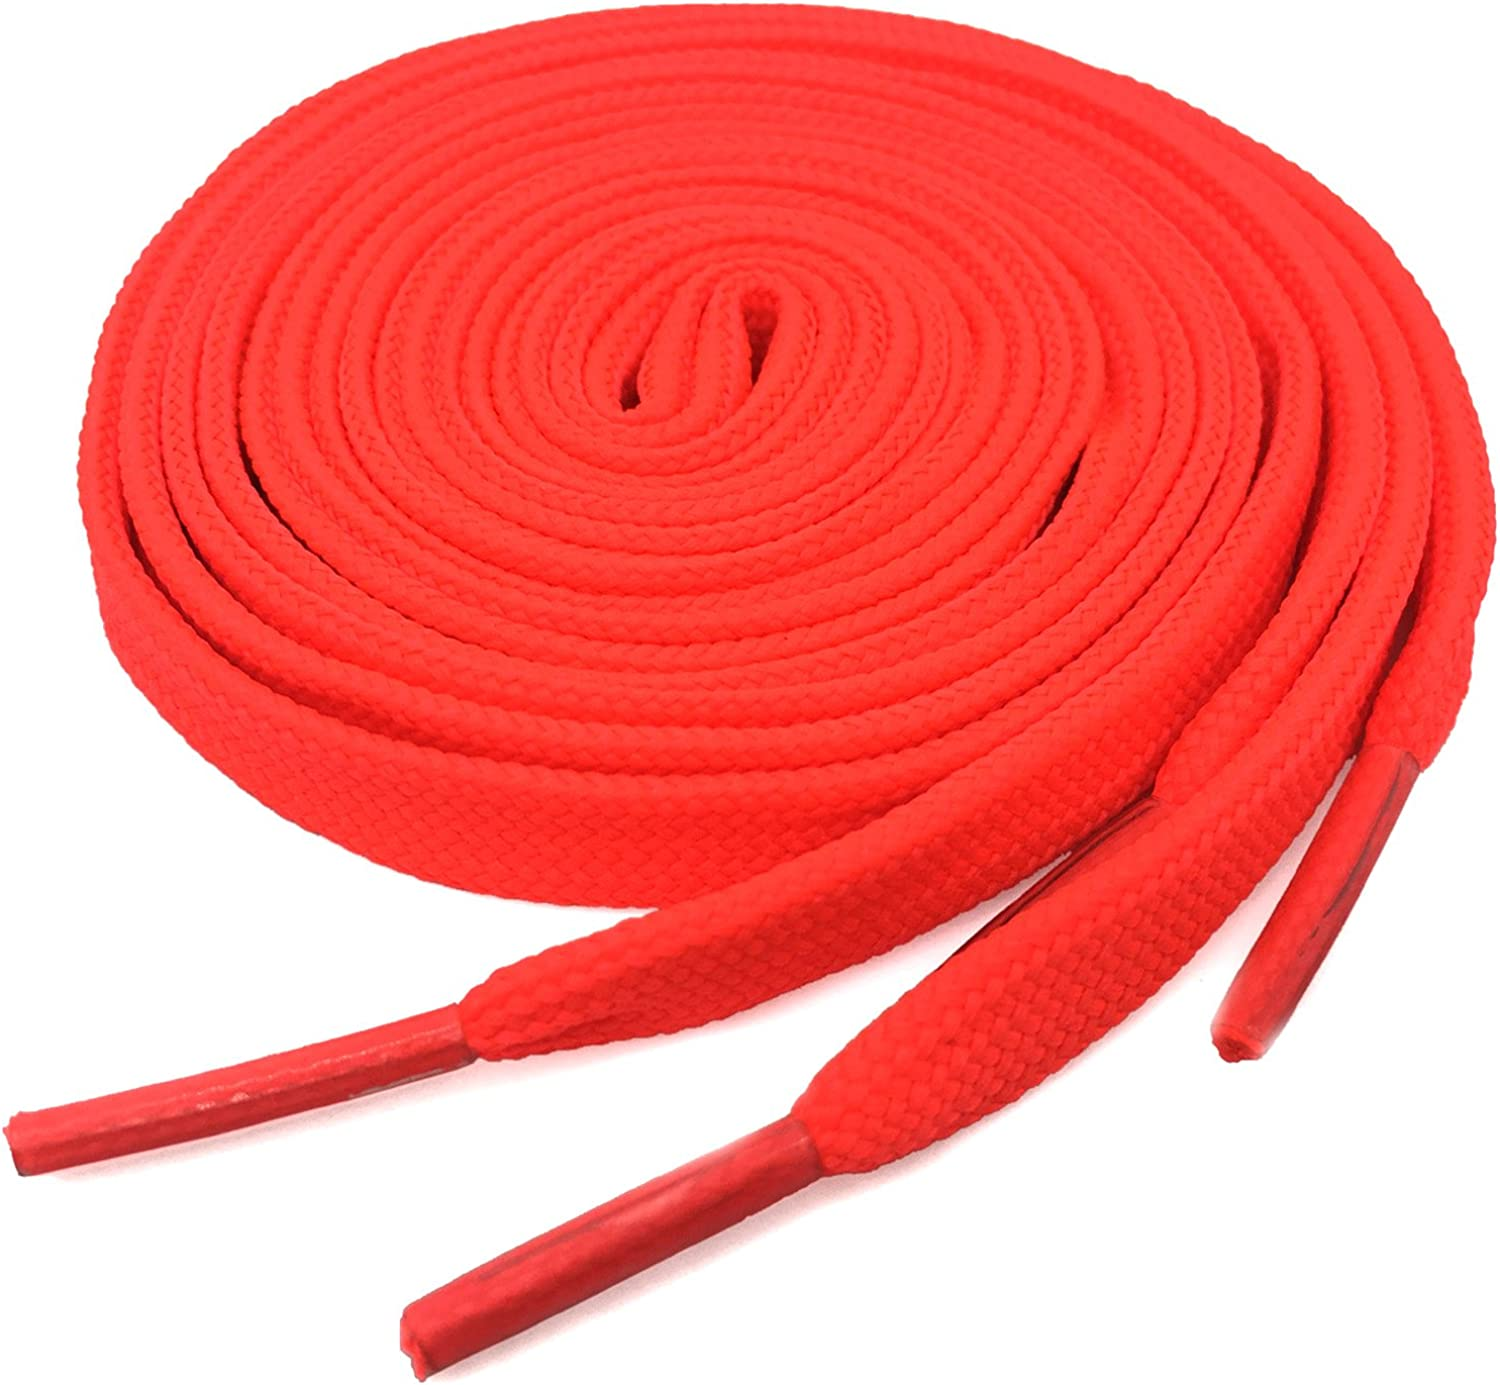 Flat Athletic Max 77% OFF Shoelaces Topics on TV YJRVFINE Thick Shoe for Strings Laces Sn